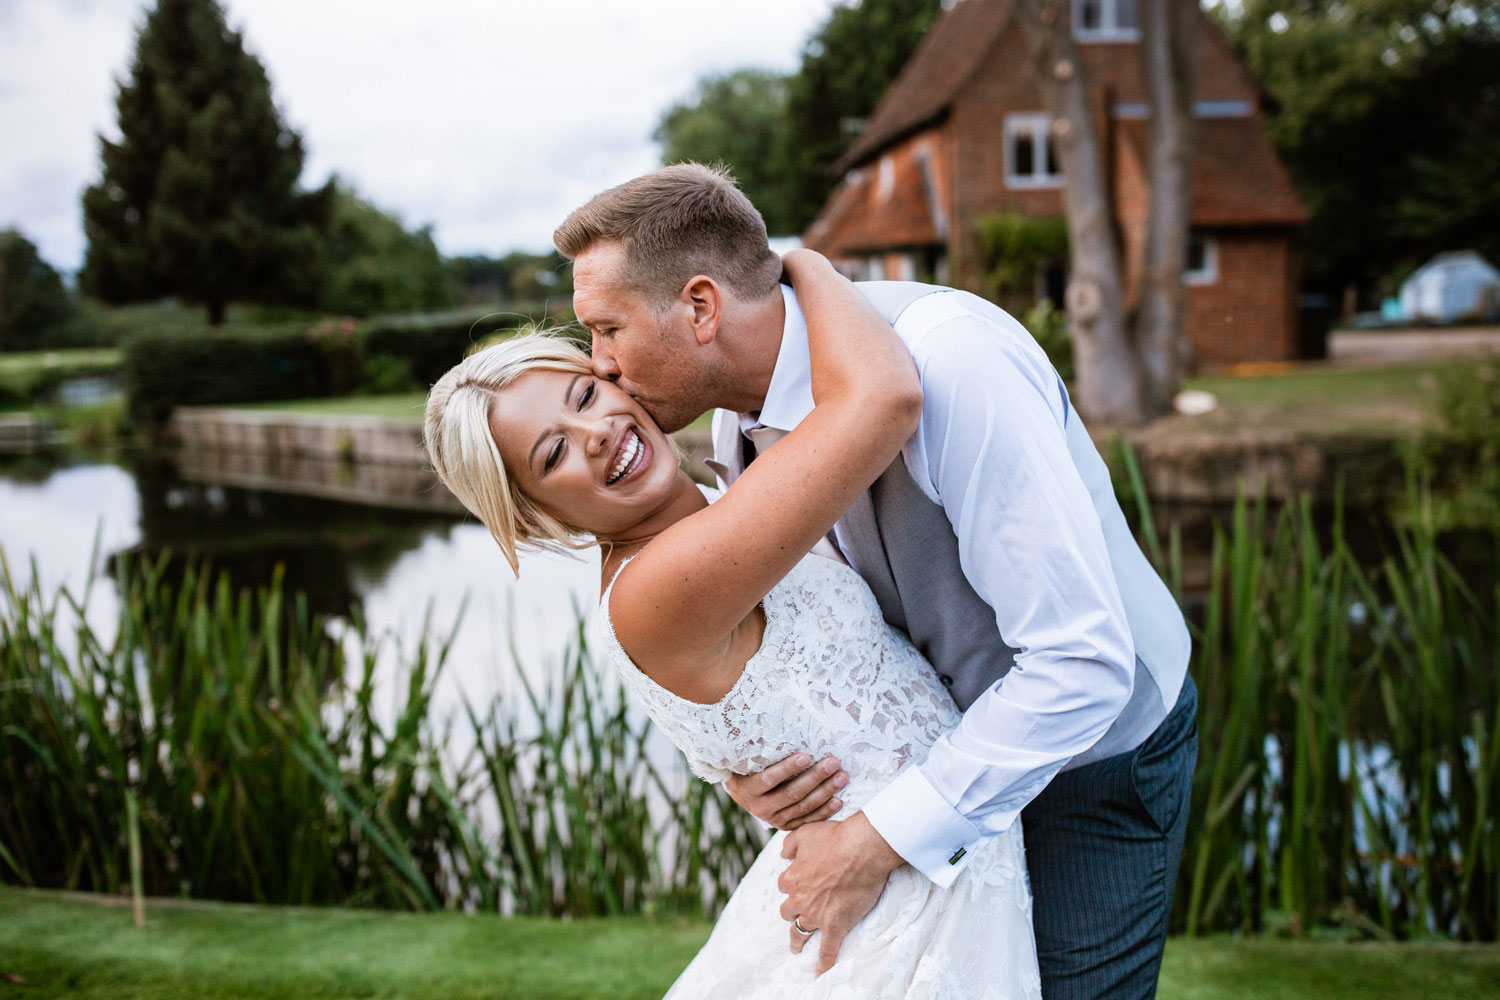 Wedding Open Day at Le Talbooth, Dedham on Sunday 14th April